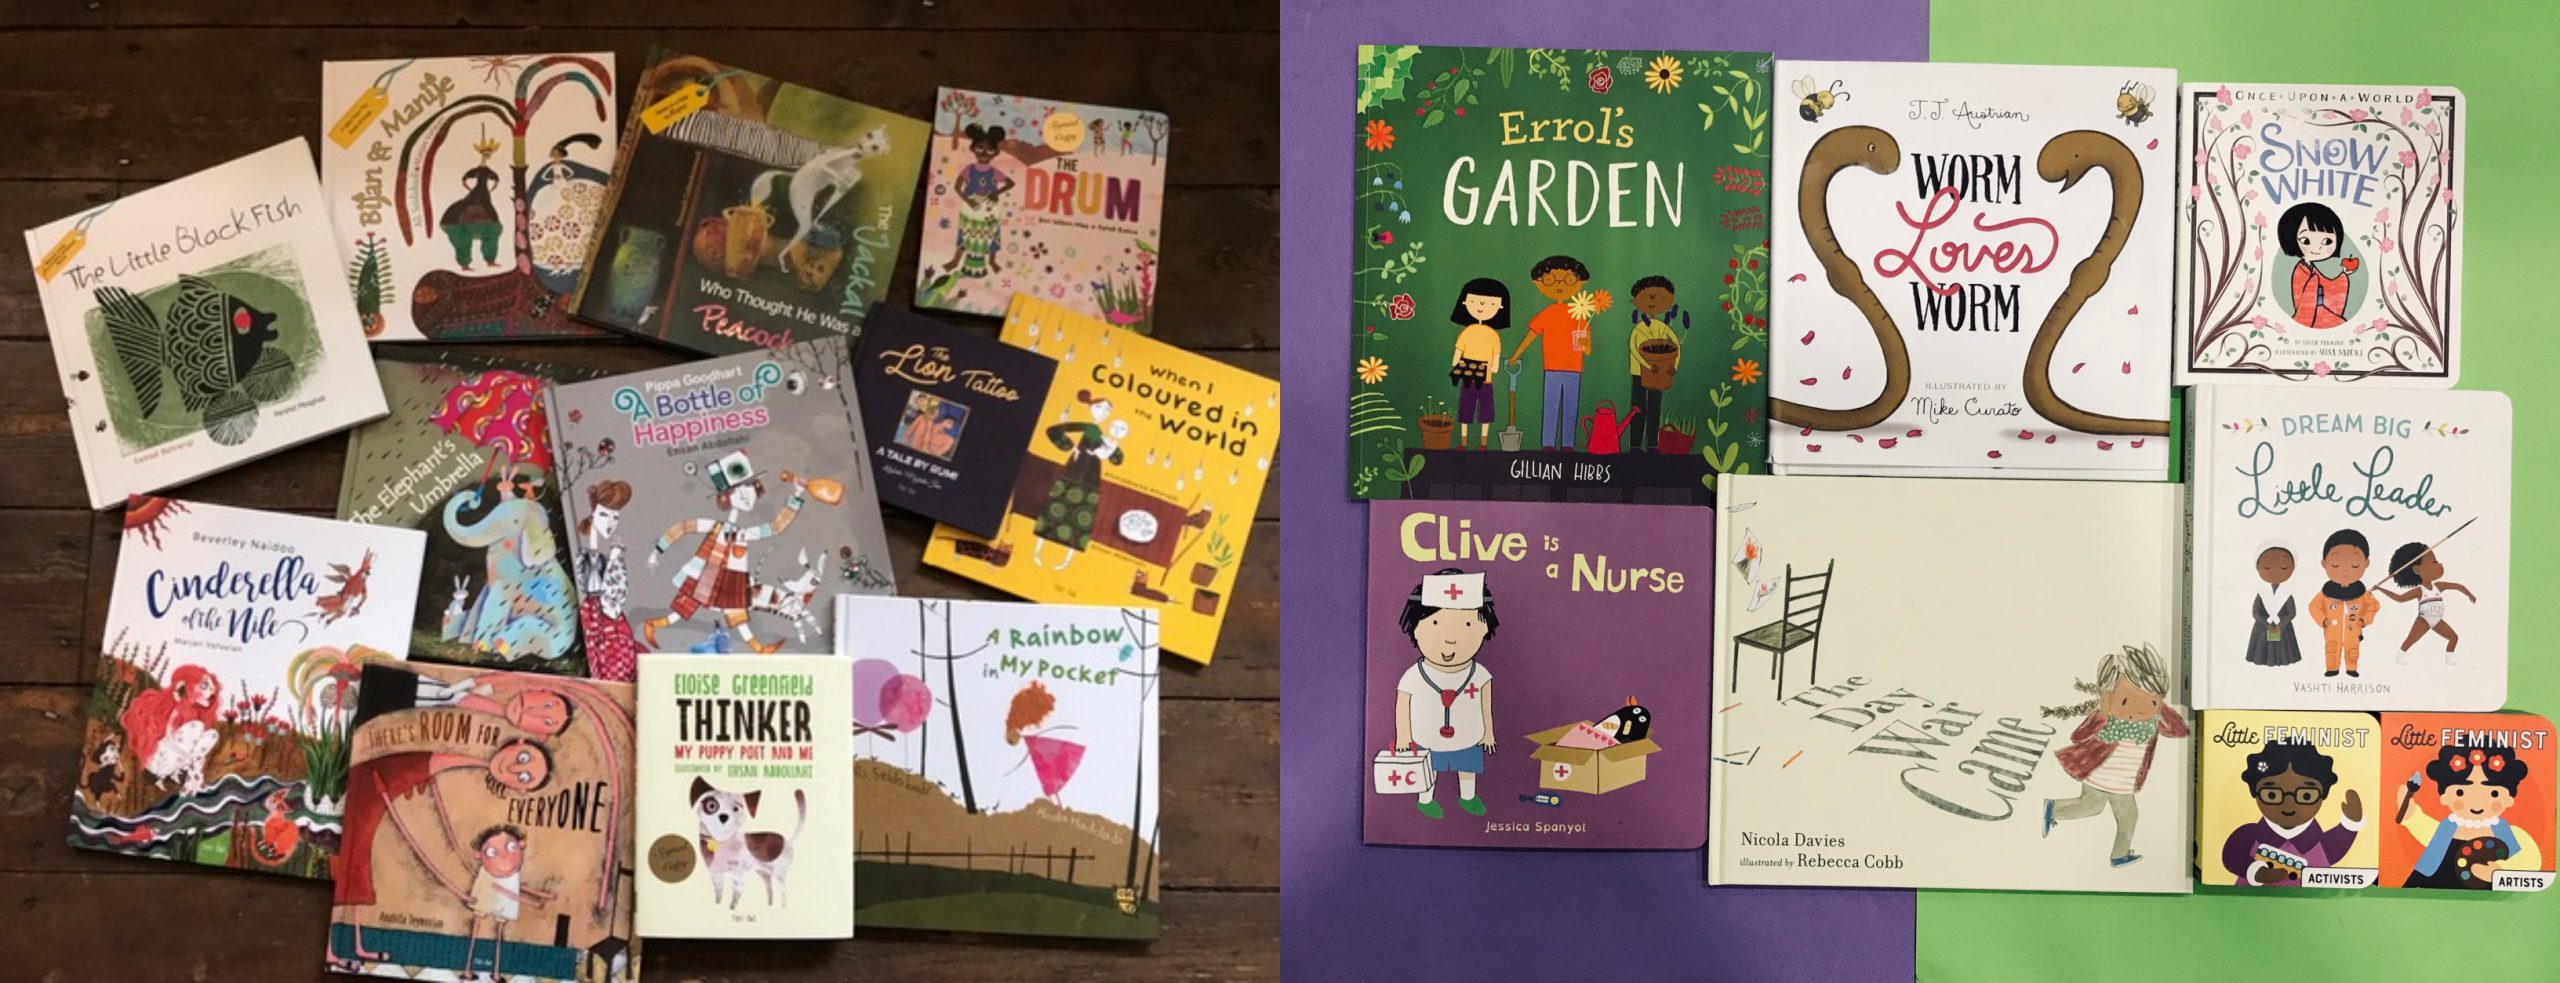 greater diversity in children's books and publishing